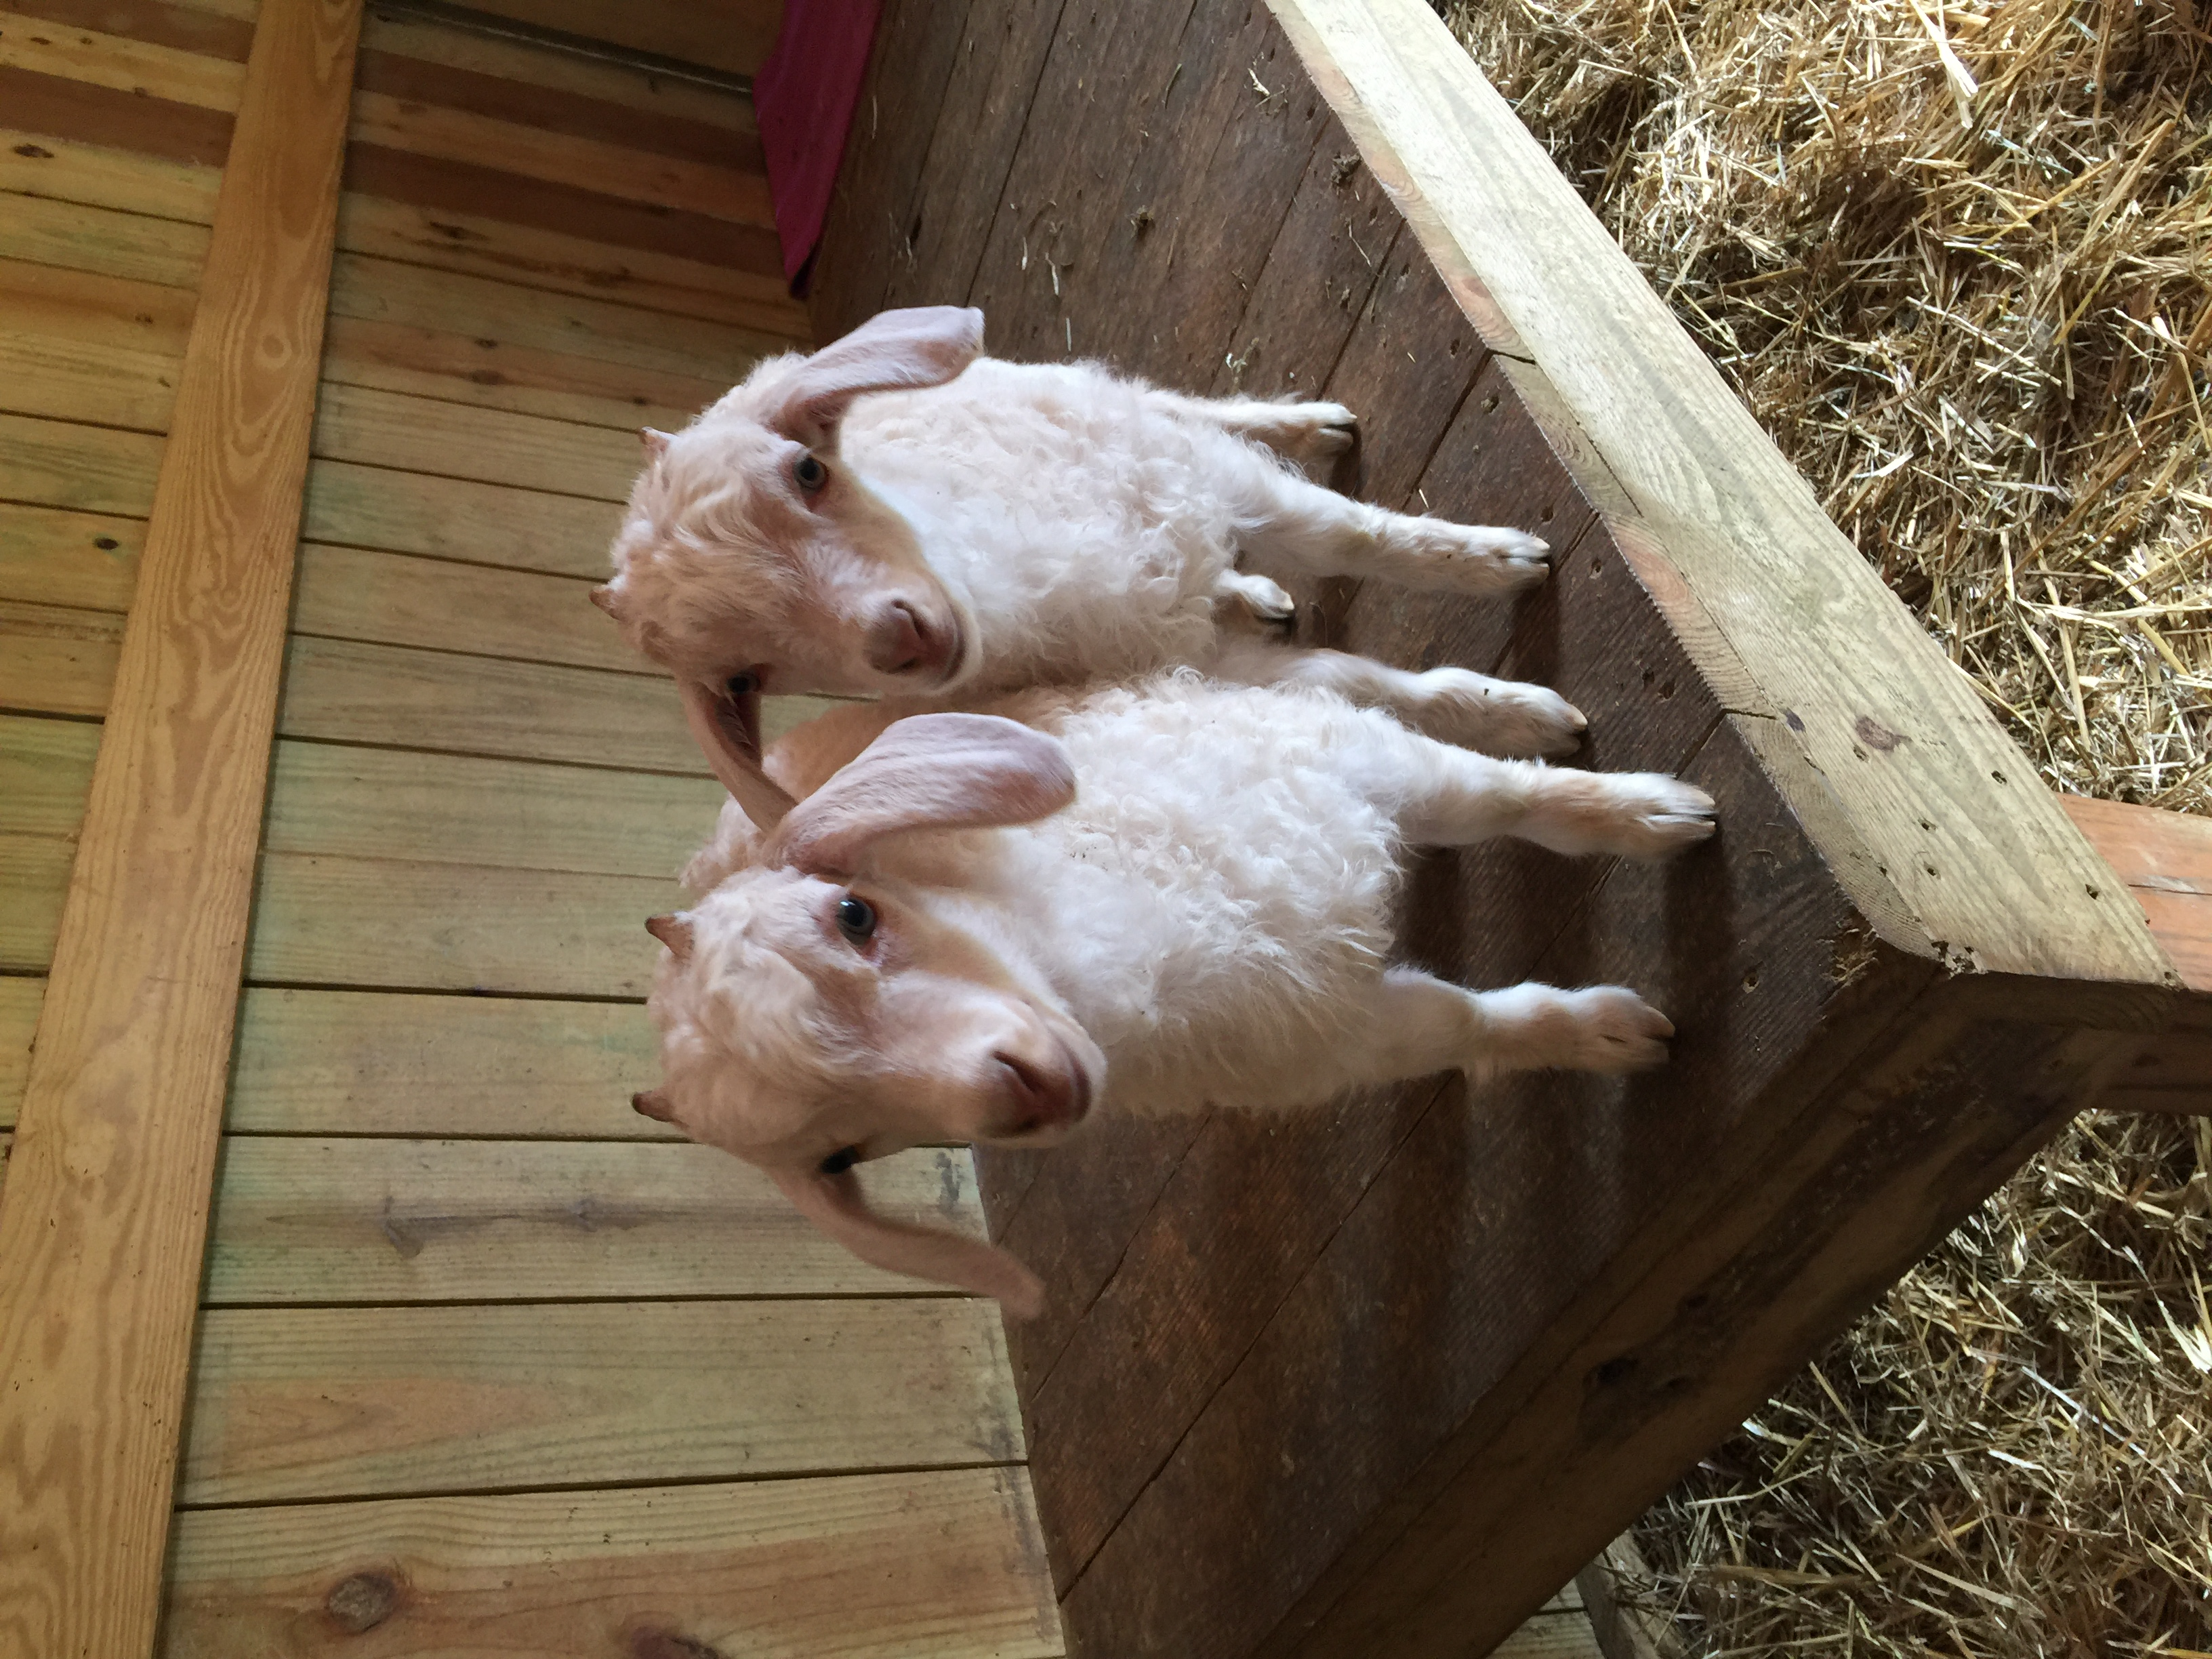 Two baby goats